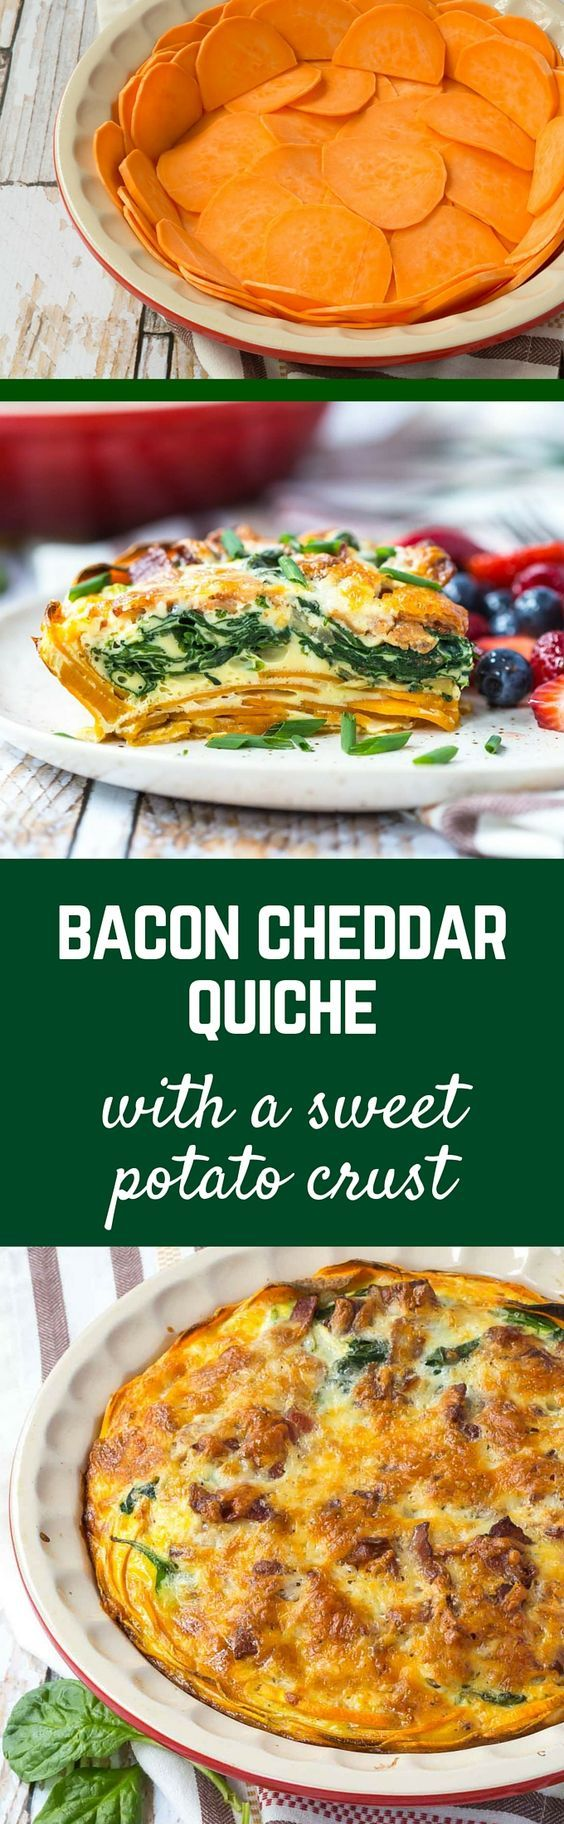 If you haven't made a quiche with a sweet potato crust, it's time to give it a try! This bacon cheddar quiche is a healthier alternative to a traditional quiche, plus it packs more flavor! Get the fun breakfast or brunch recipe on RachelCooks.com! #sponsored @MilkMeansMore